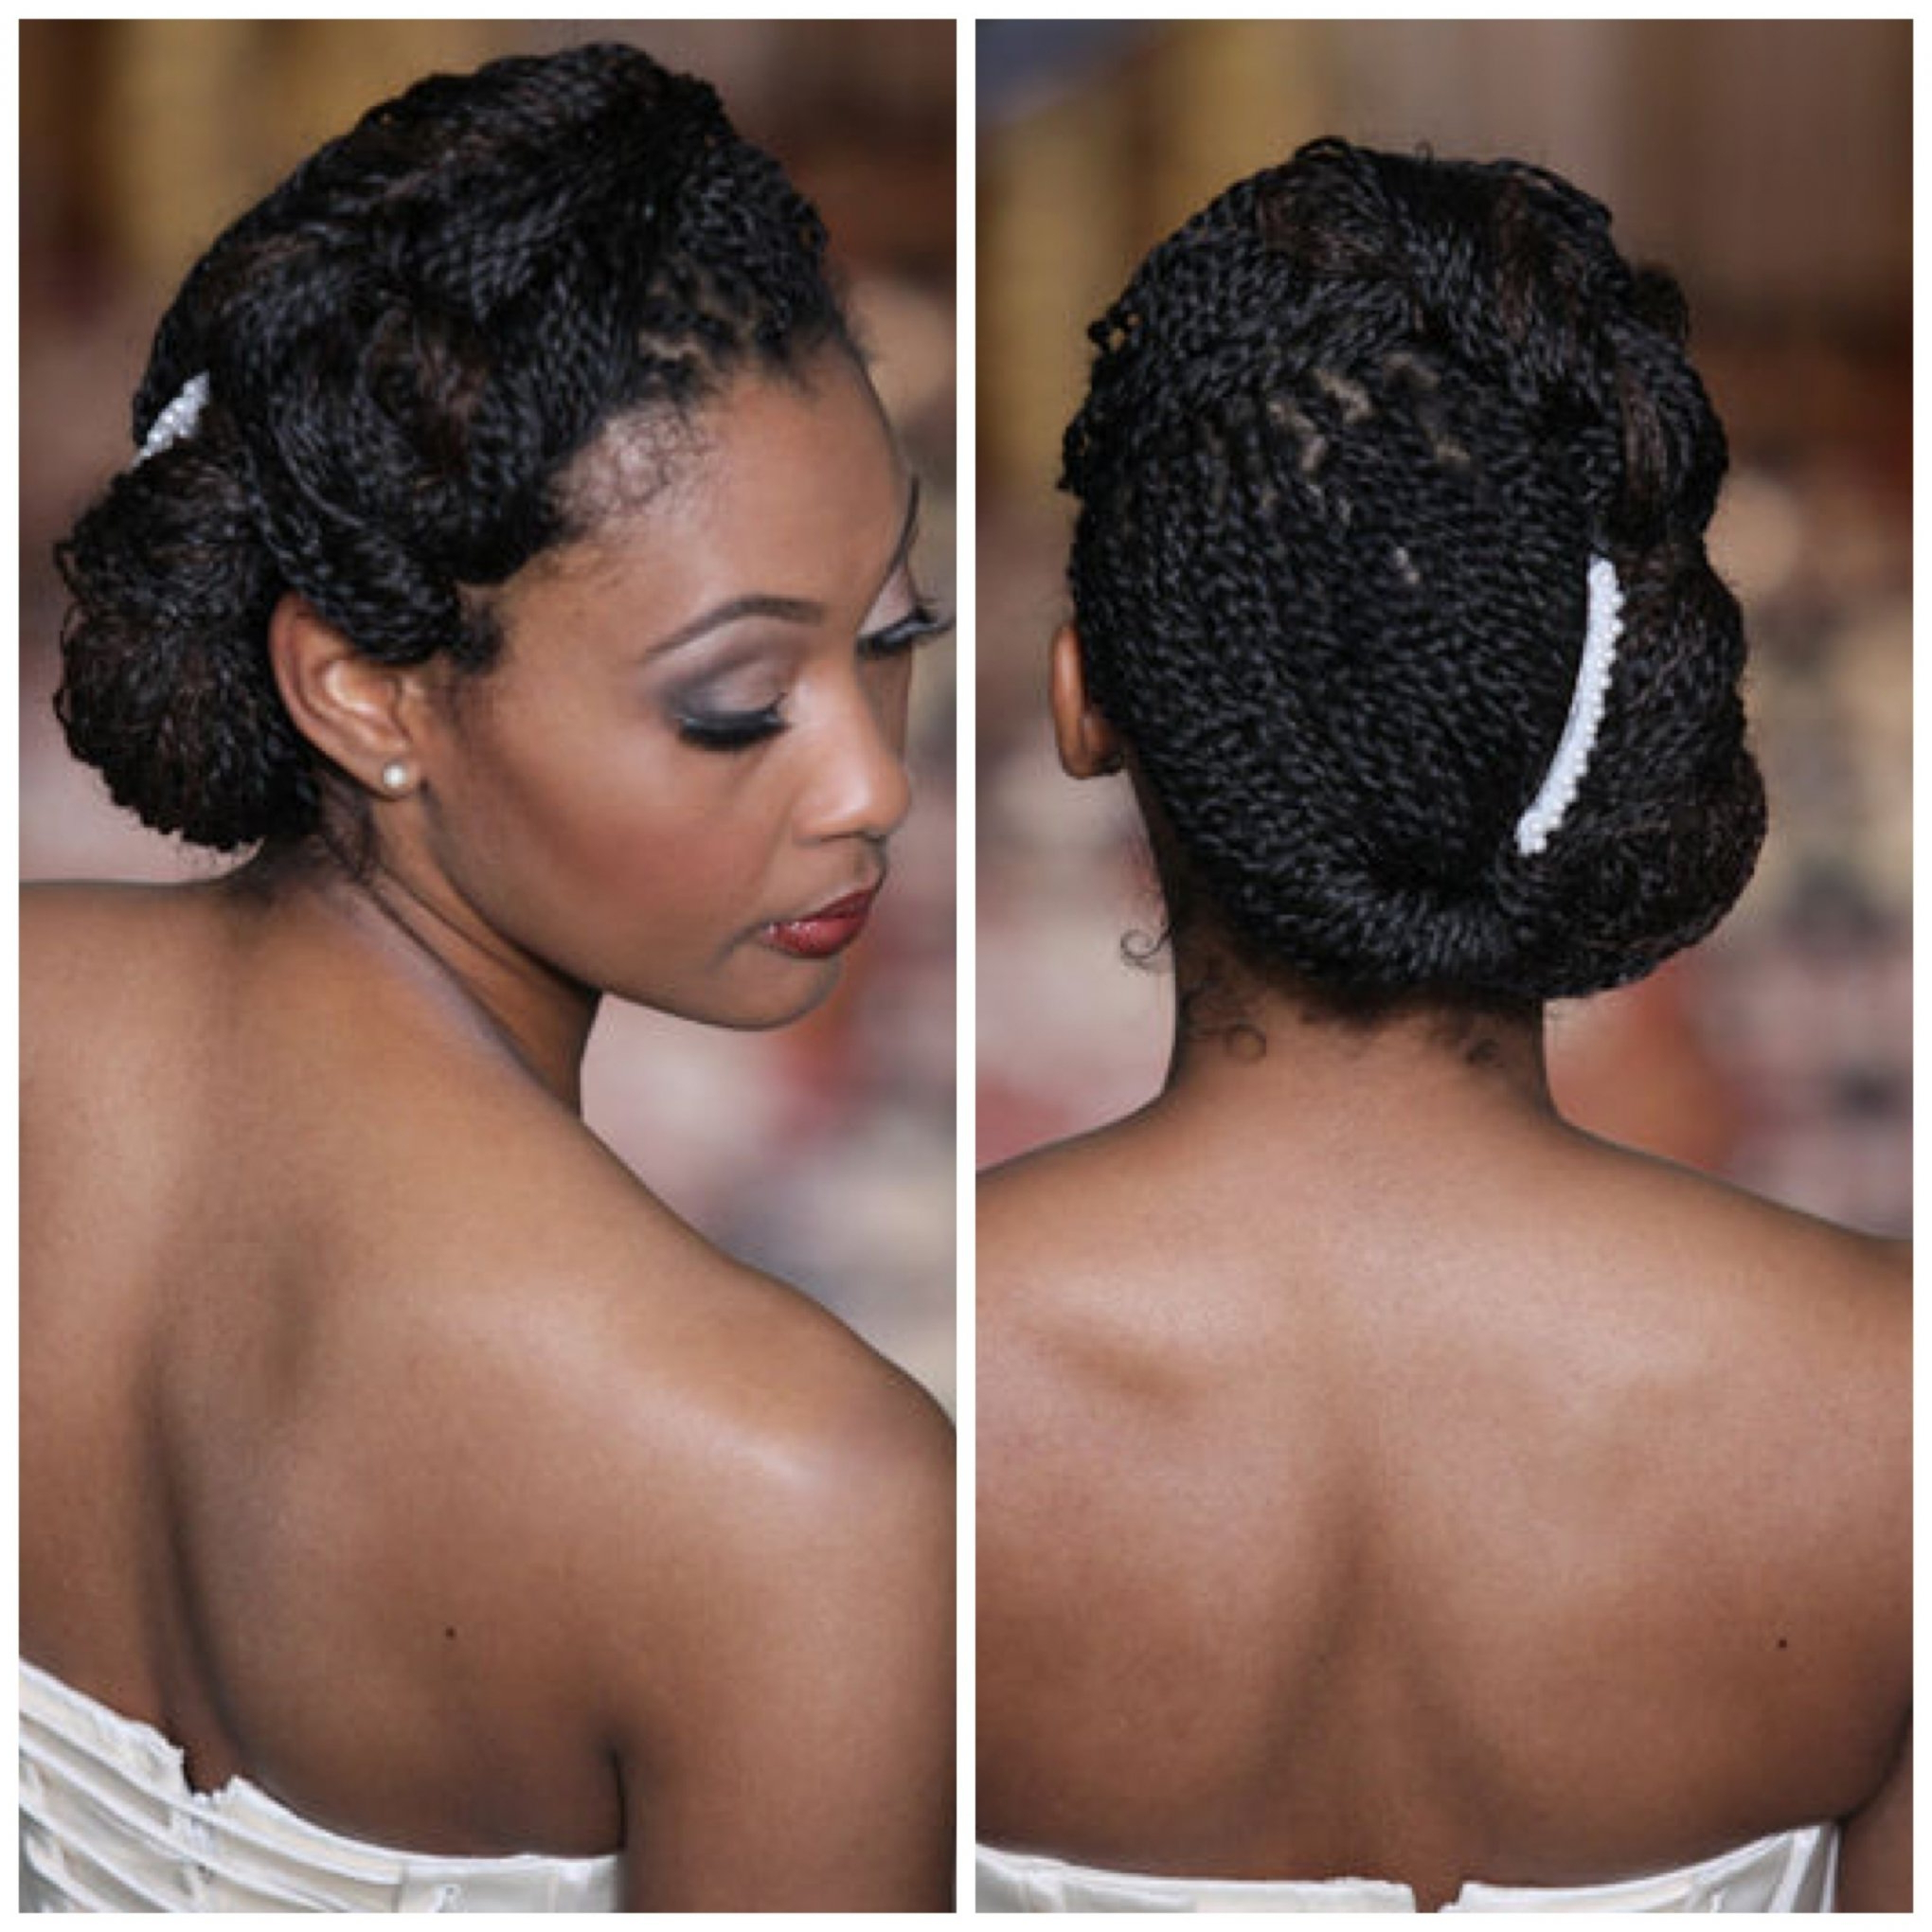 Women Hairstyle : Surprising Black Braided Hairstyles Intended For Most Up To Date One Side Braided Hairstyles (Gallery 13 of 20)